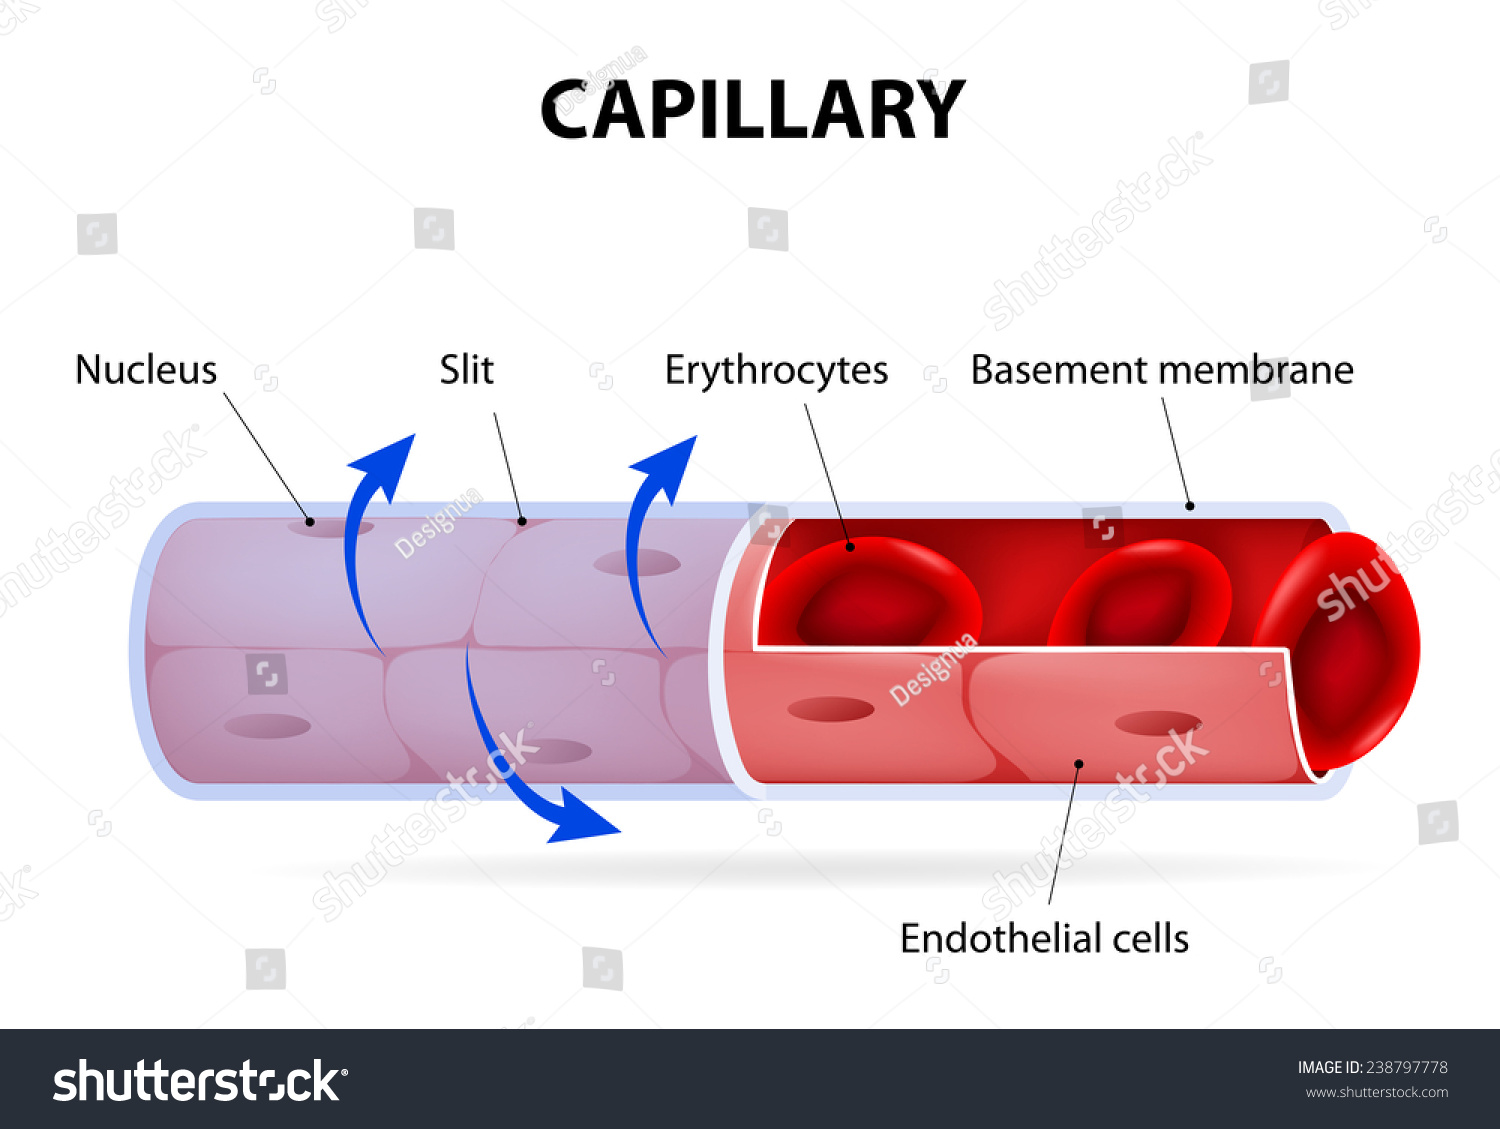 Diagram Of Capillary | Capillary Blood Vessel Labelled Stock Illustration 238797778